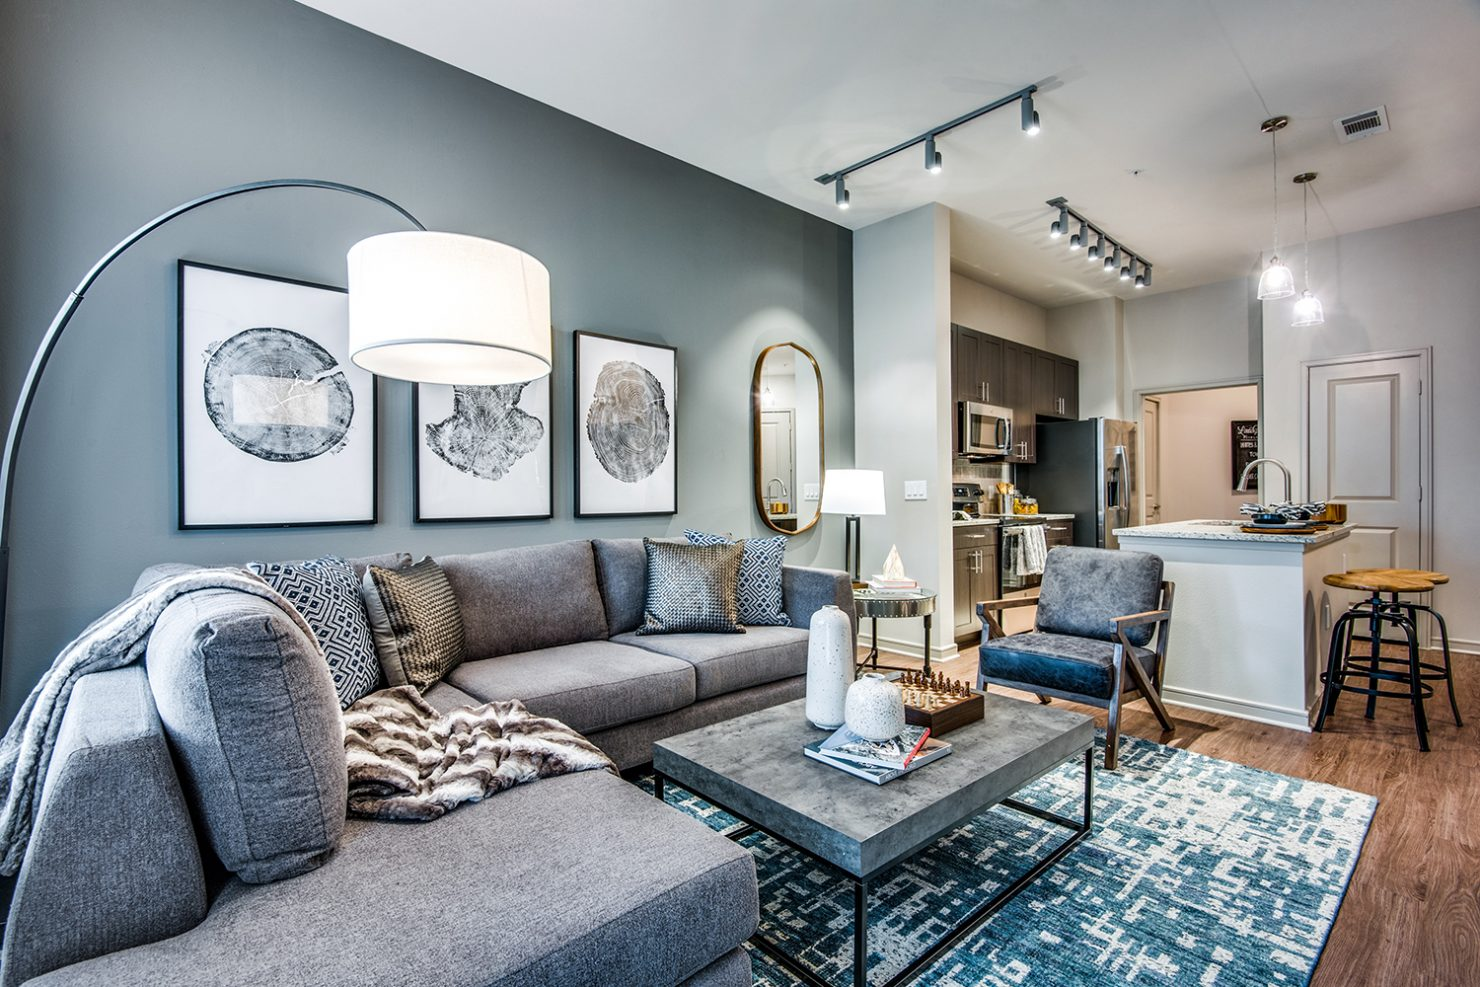 Model apartment living area with large sectional sofa, neutral accent wall, and designer lighting with view of kitchen with island and laundry area